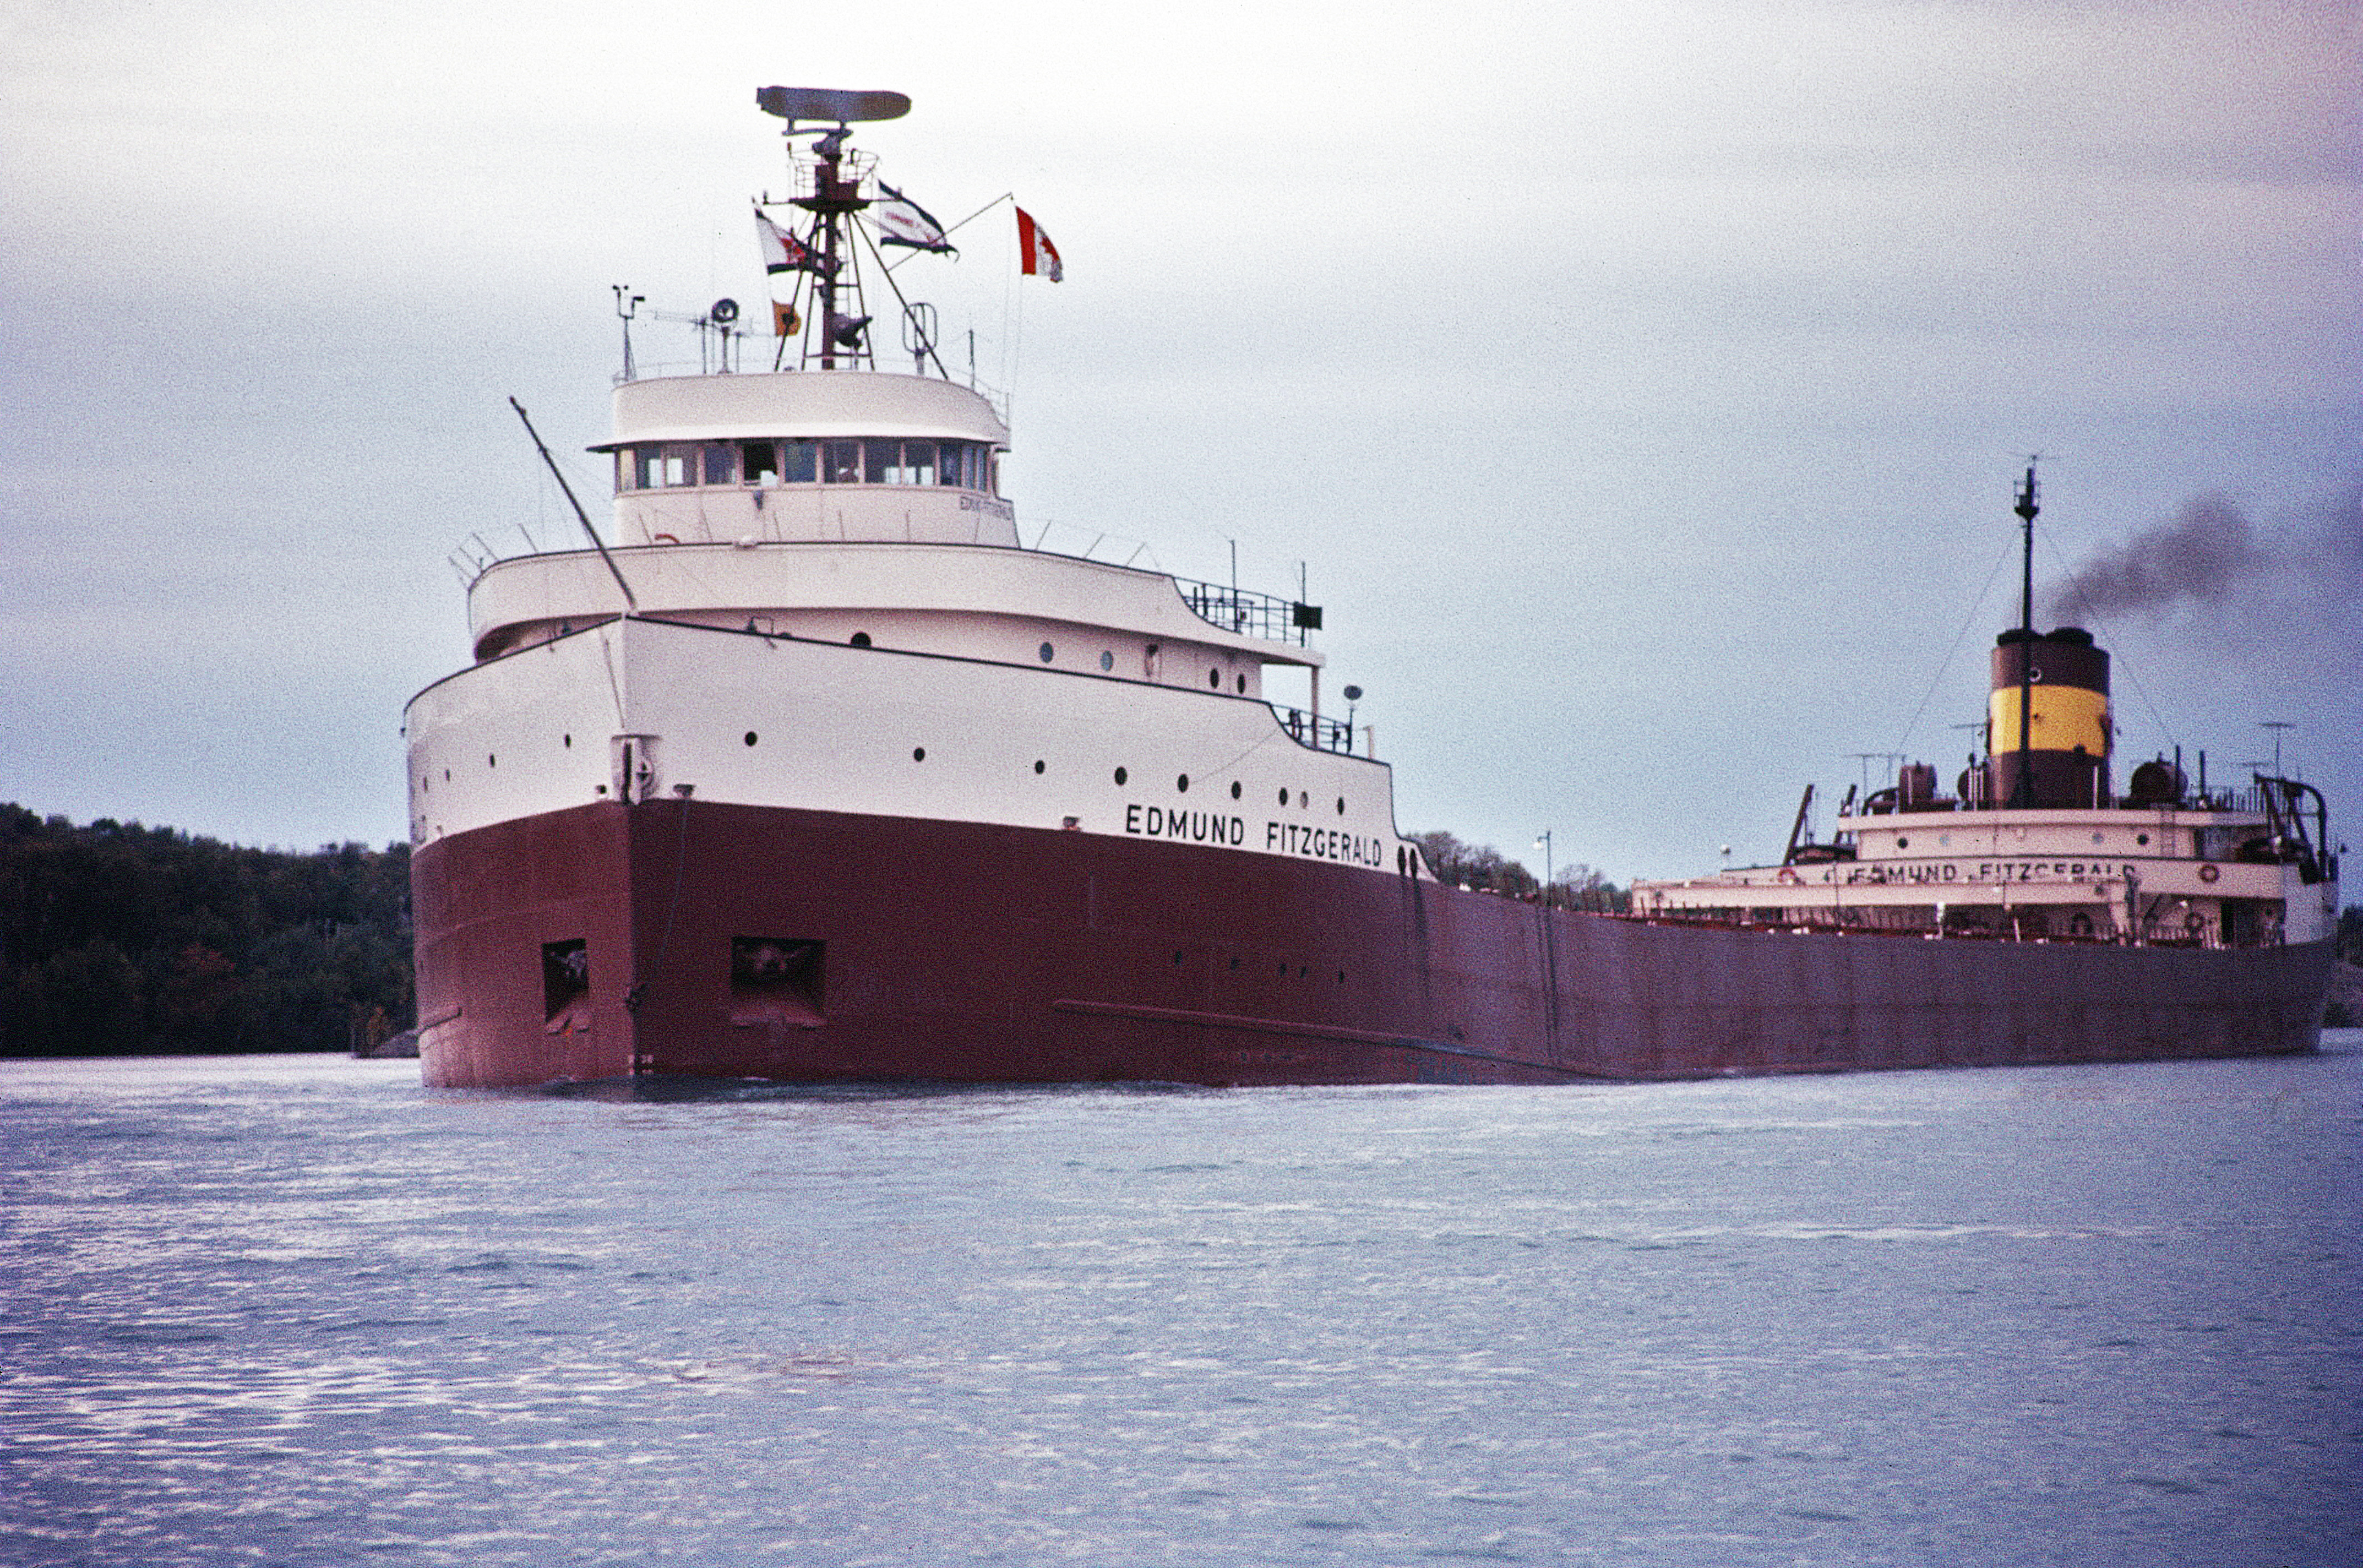 The Edmund Fitzgerald Song of the Bell